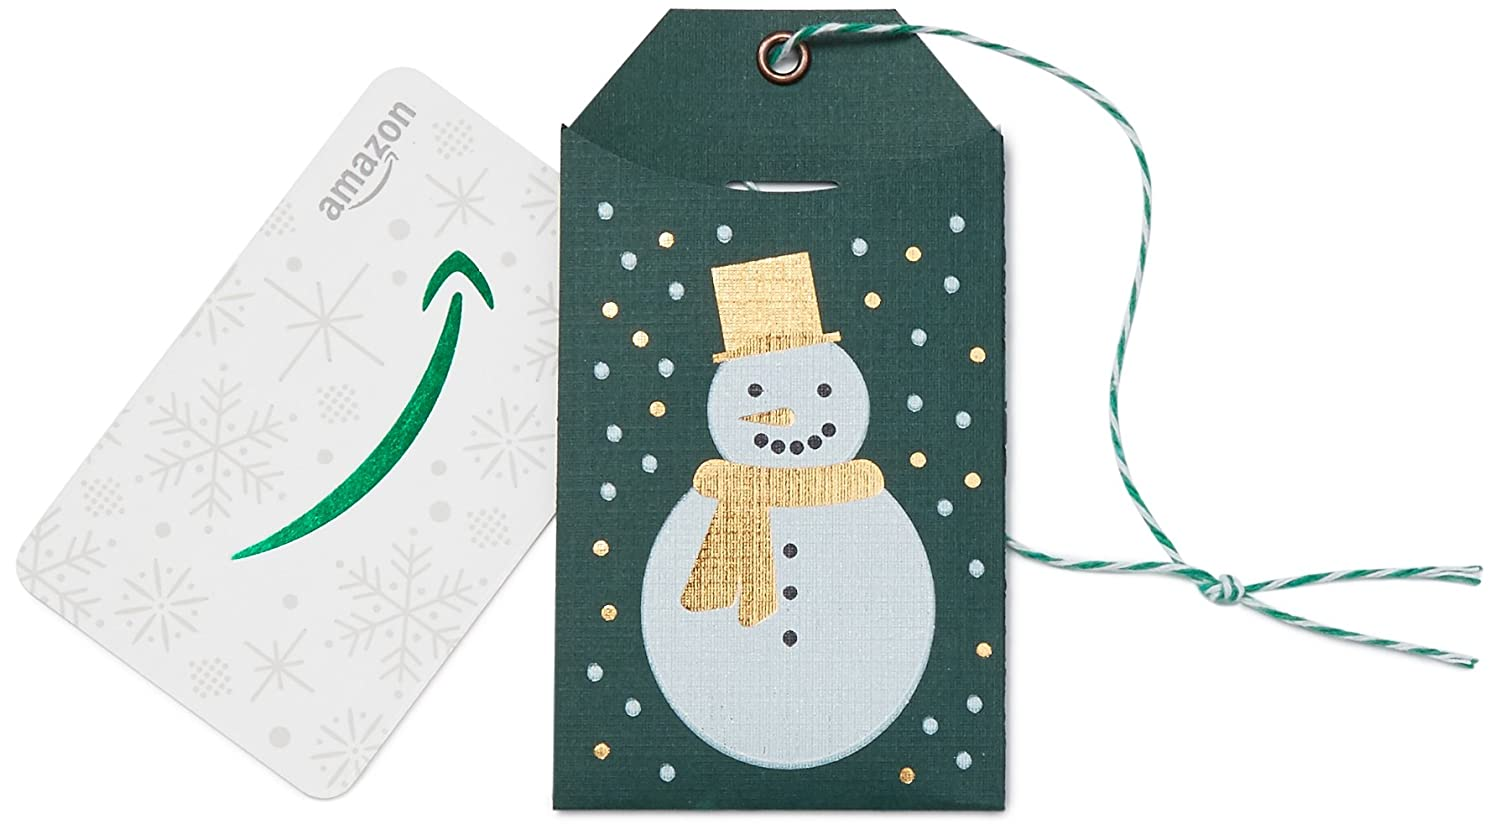 Amazon.com Gift Card in Super Special SALE held a Green mart Tag Snowman